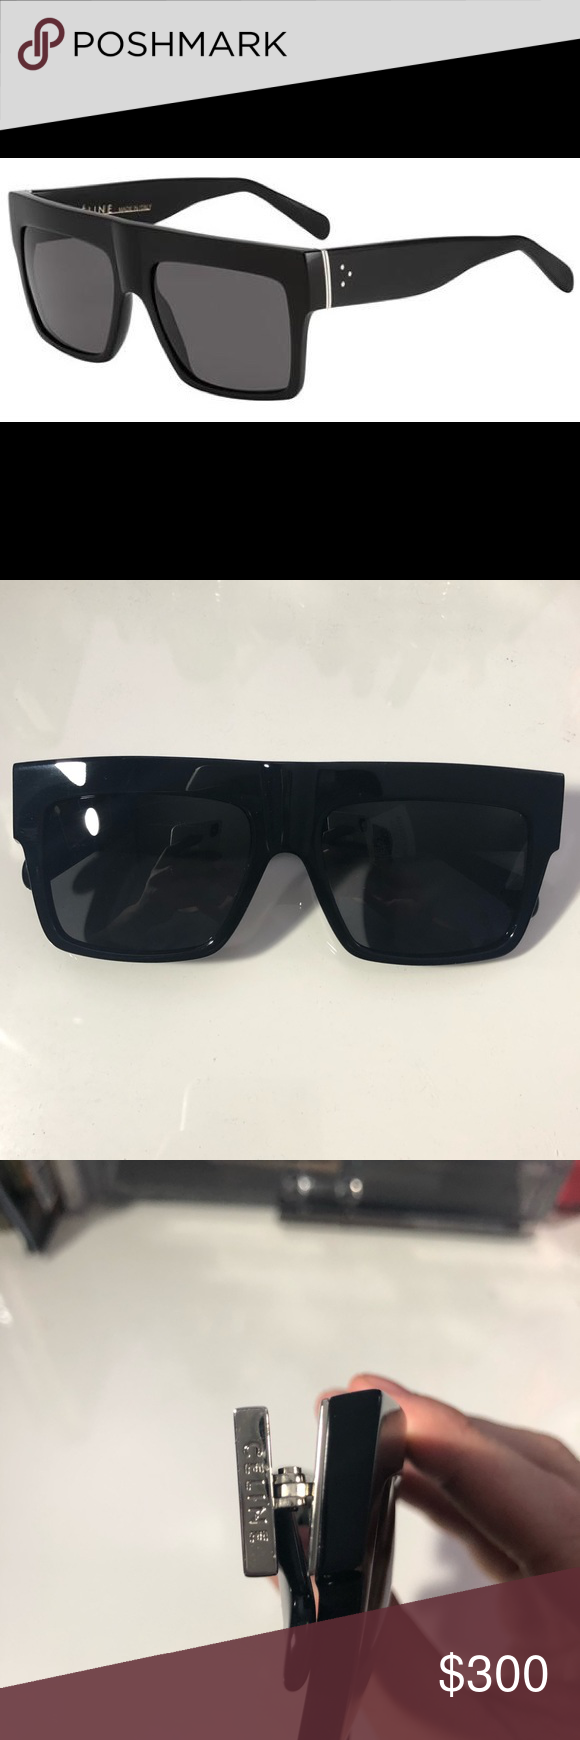 643605917e9 Celine ZZ Top Sunglasses CL 41756 Brand new with tags attached and comes  with original pouch Celine Accessories Sunglasses